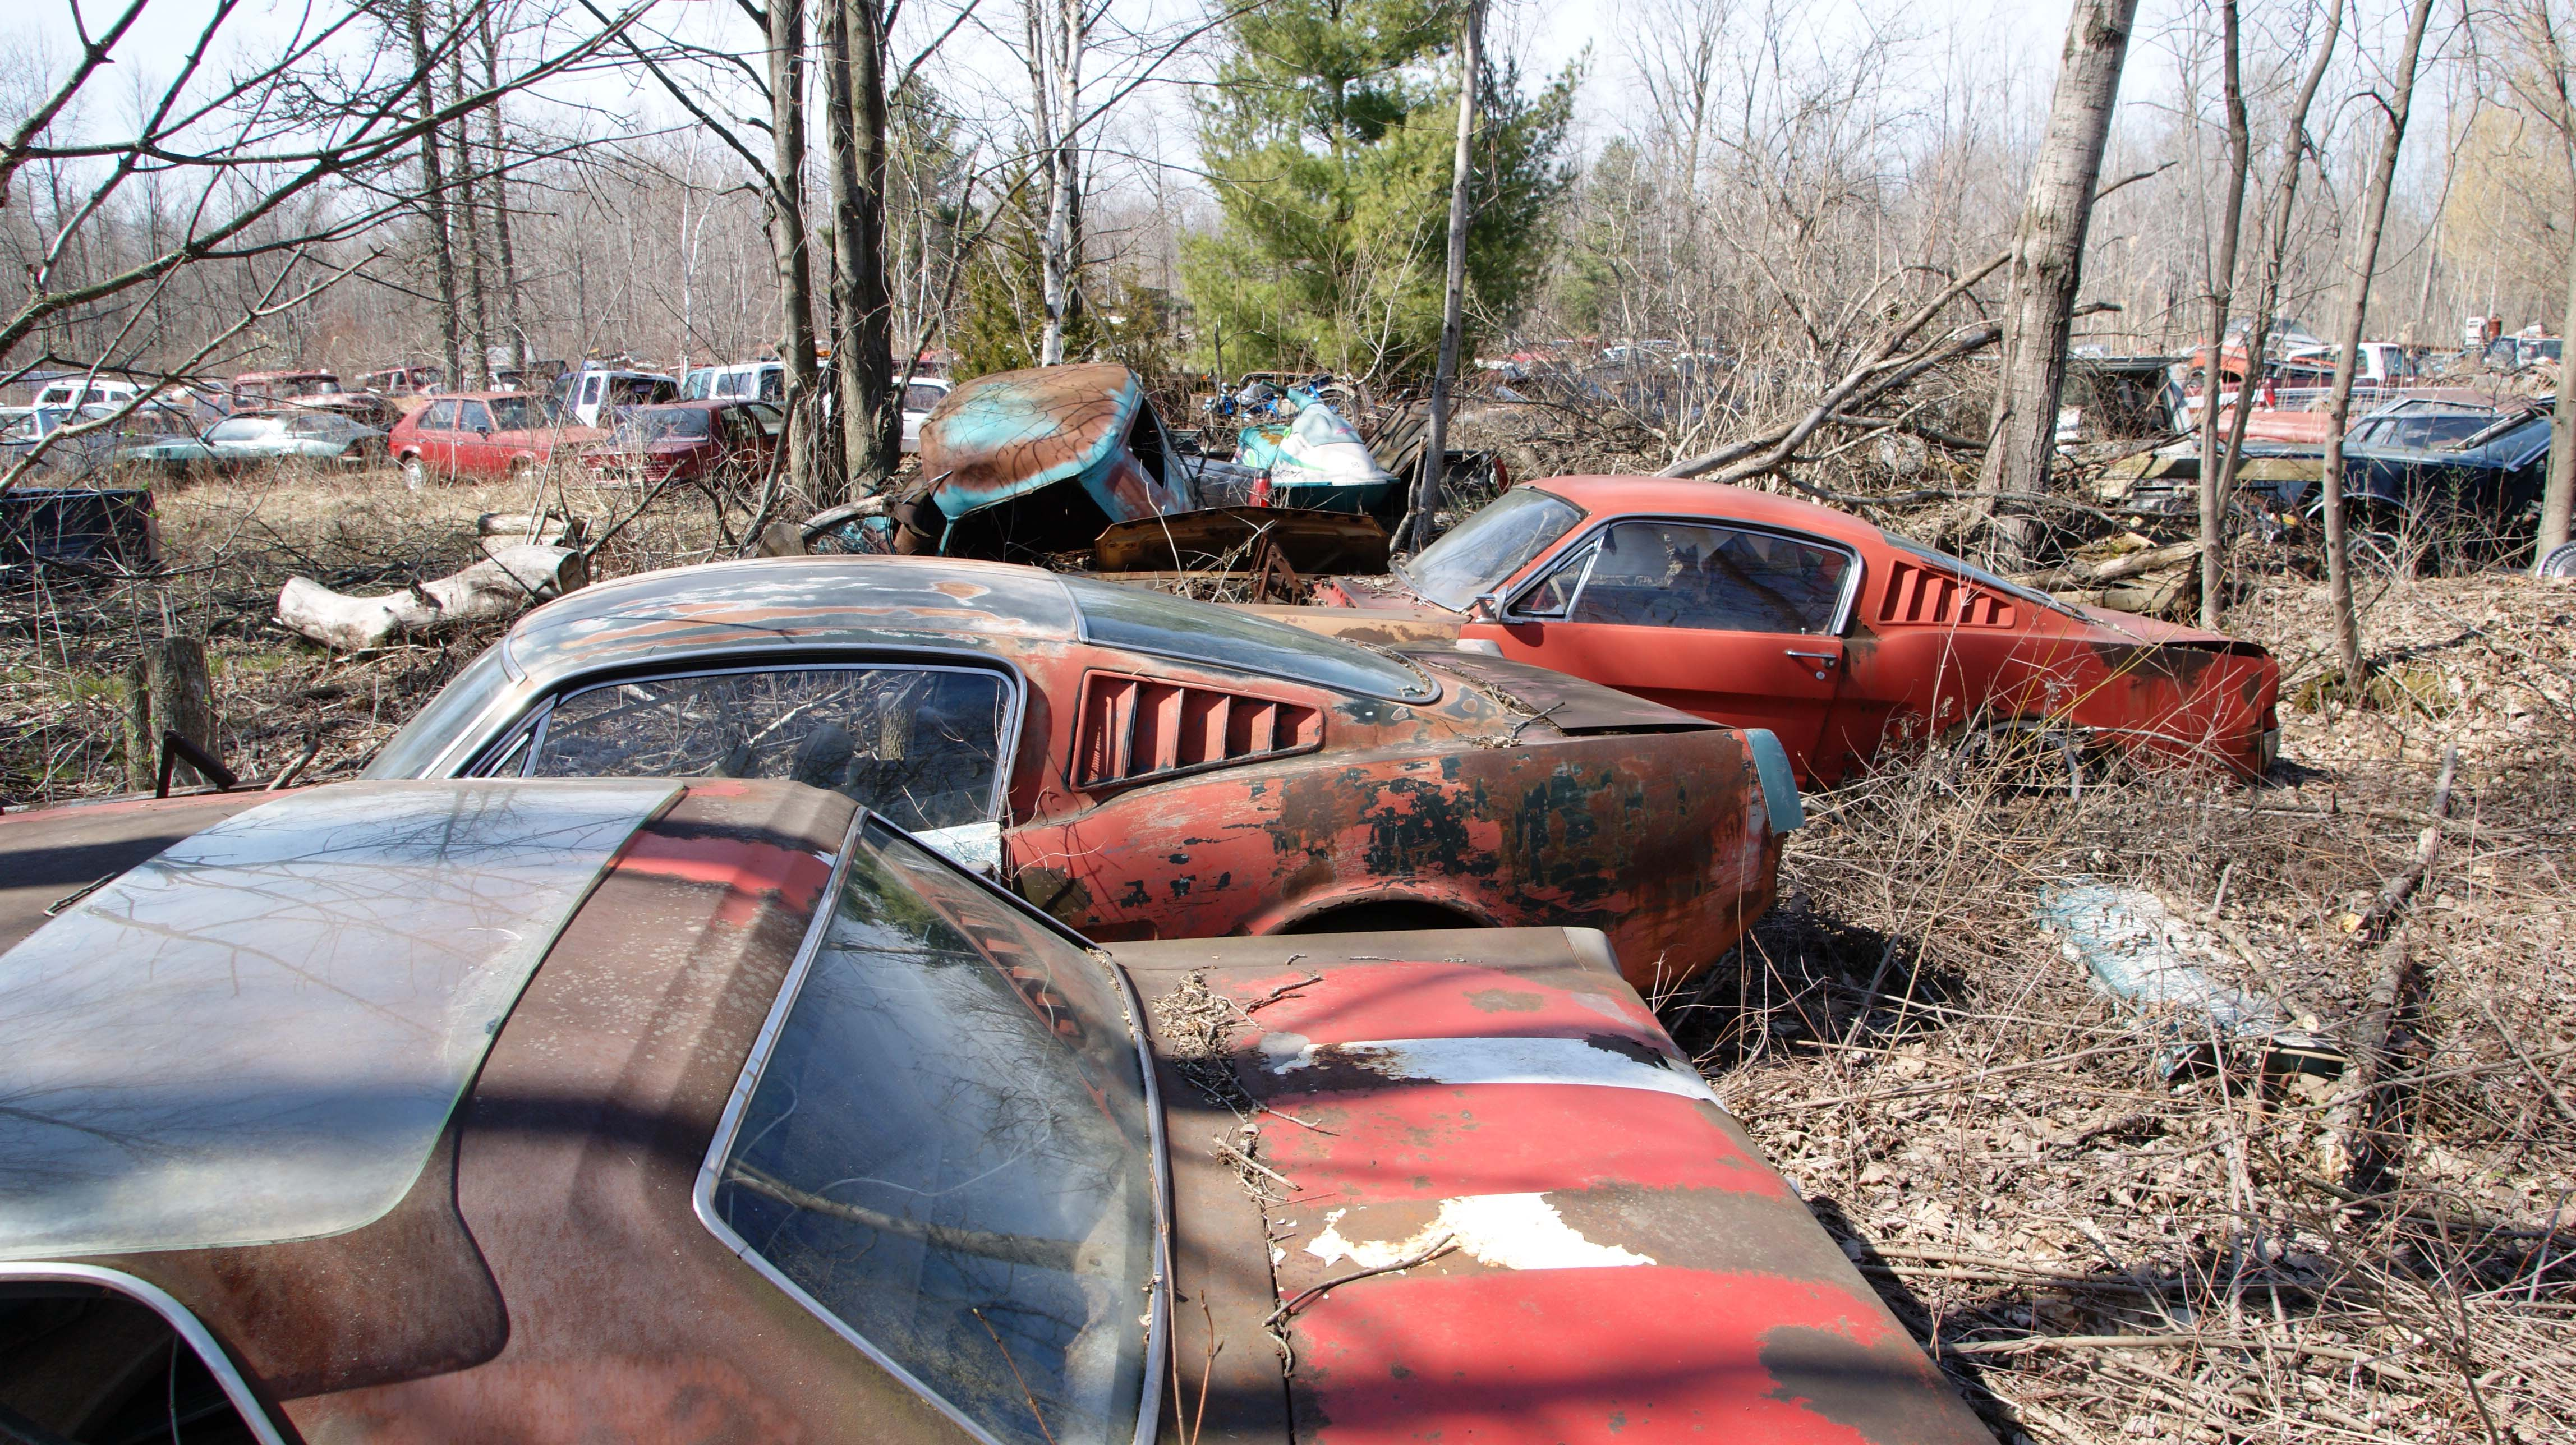 001 Michigan Junkyard 1966 Ford Mustang Fastbacks